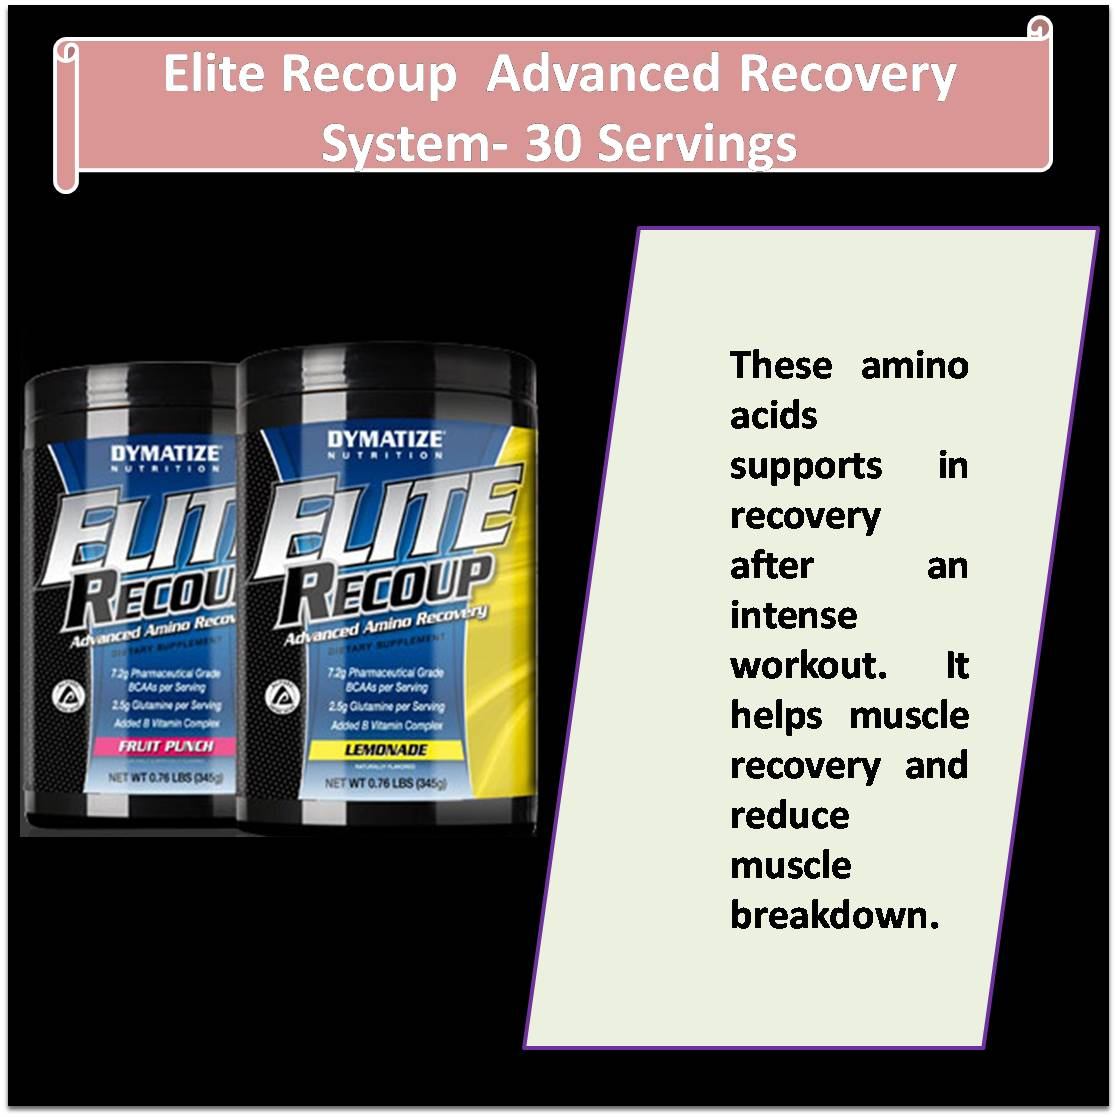 Elite Recoup  Advanced Recovery  System- 30 Servings